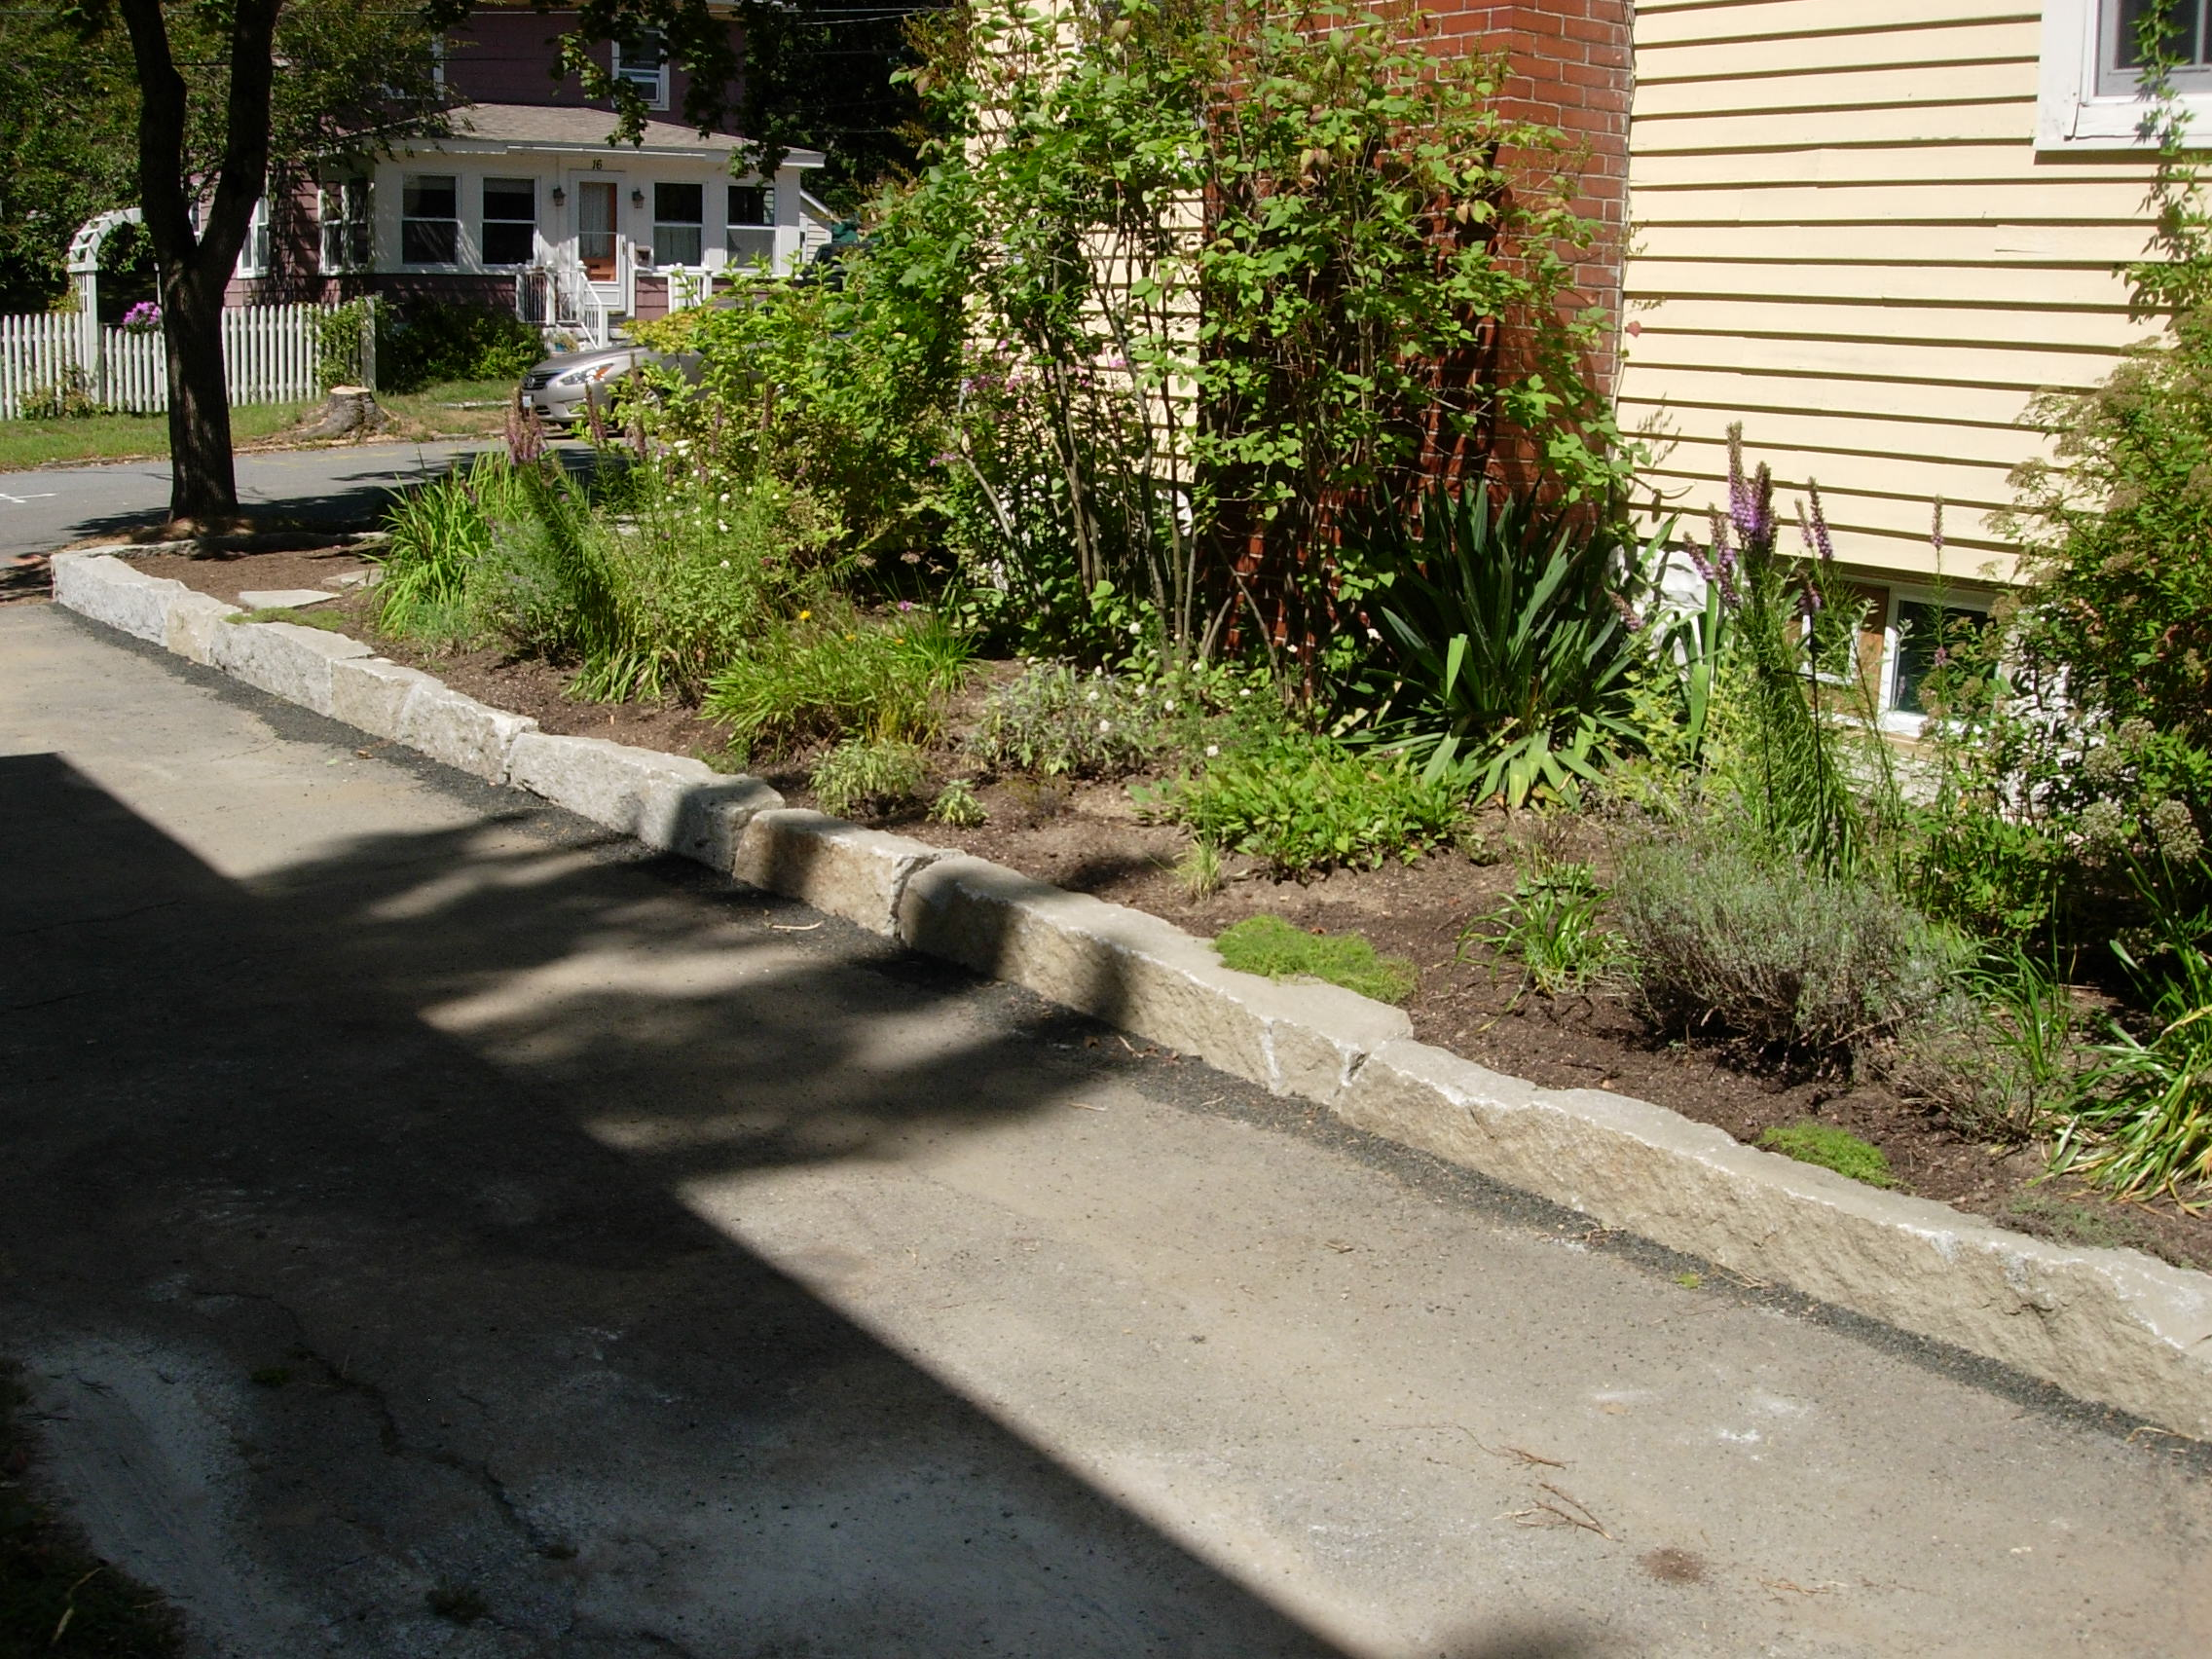 Landscaping Stones Portland Maine : Perennial stone reclaimed granite retaining wall portland maine